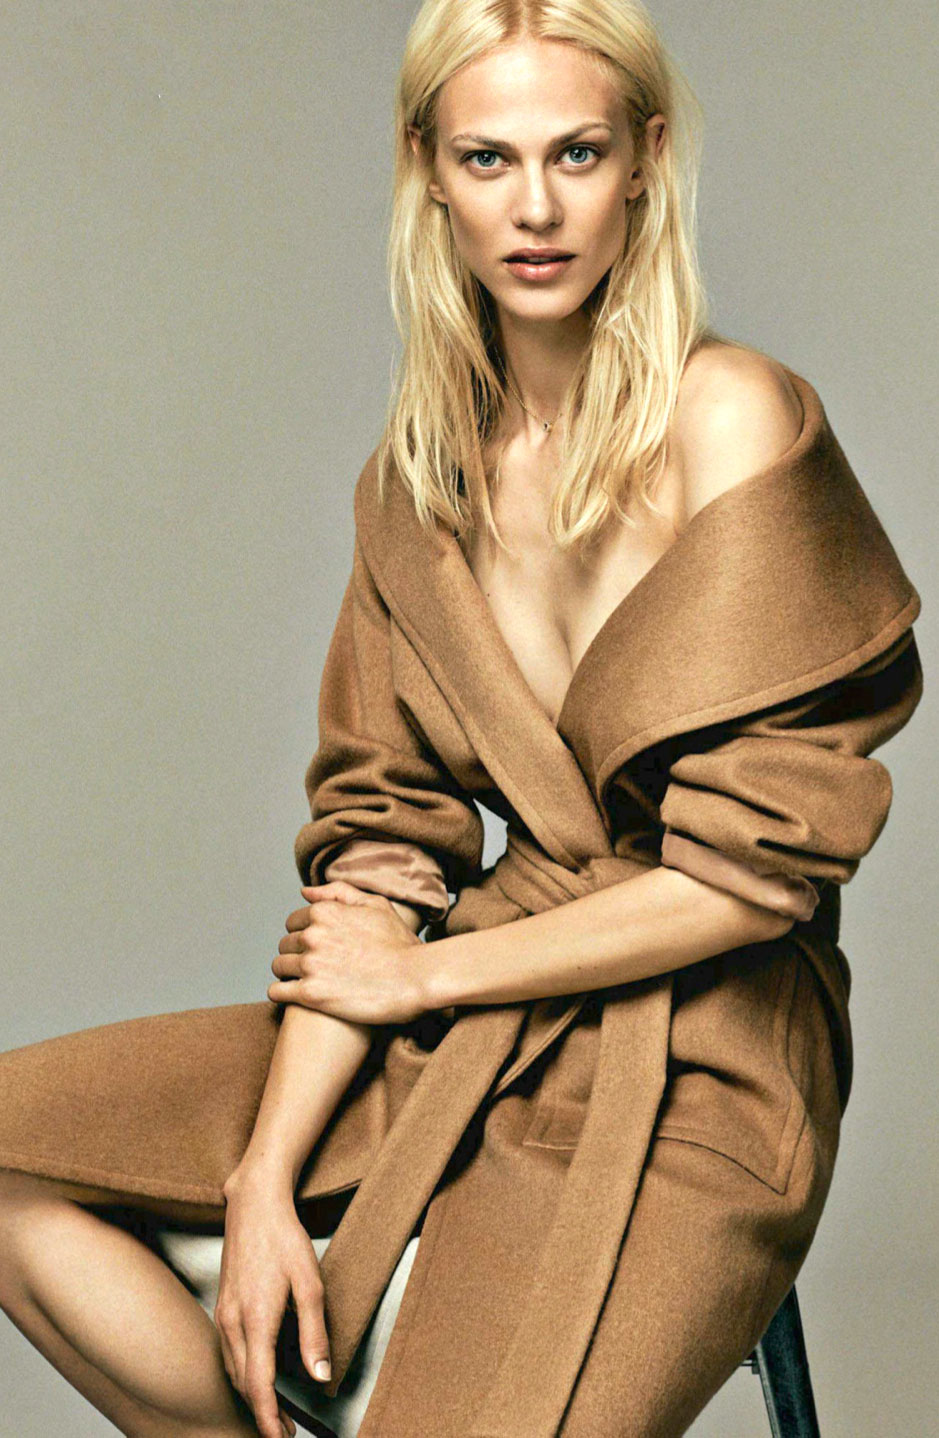 Aymeline Valade wearing Mango camel coat in S Moda August 2014 (photography: Damon Baker, styling: Francesca Rinciari)